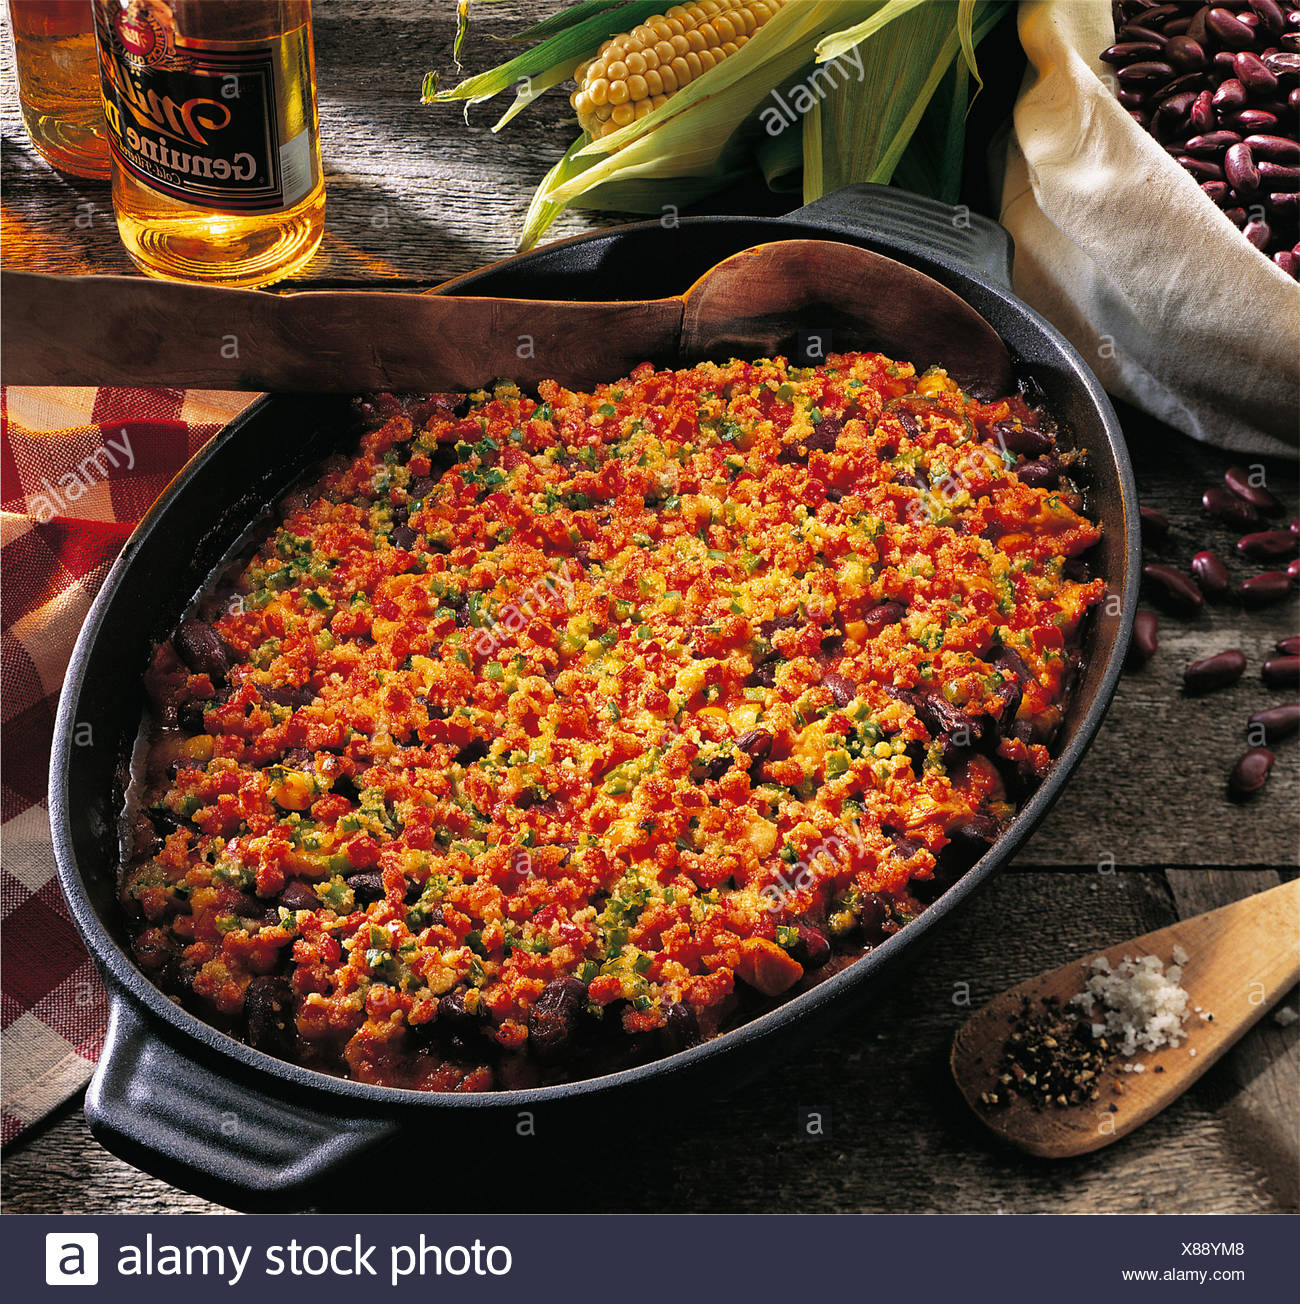 Texan chili bake usa recipe available for a fee stock photo texan chili bake usa recipe available for a fee forumfinder Gallery